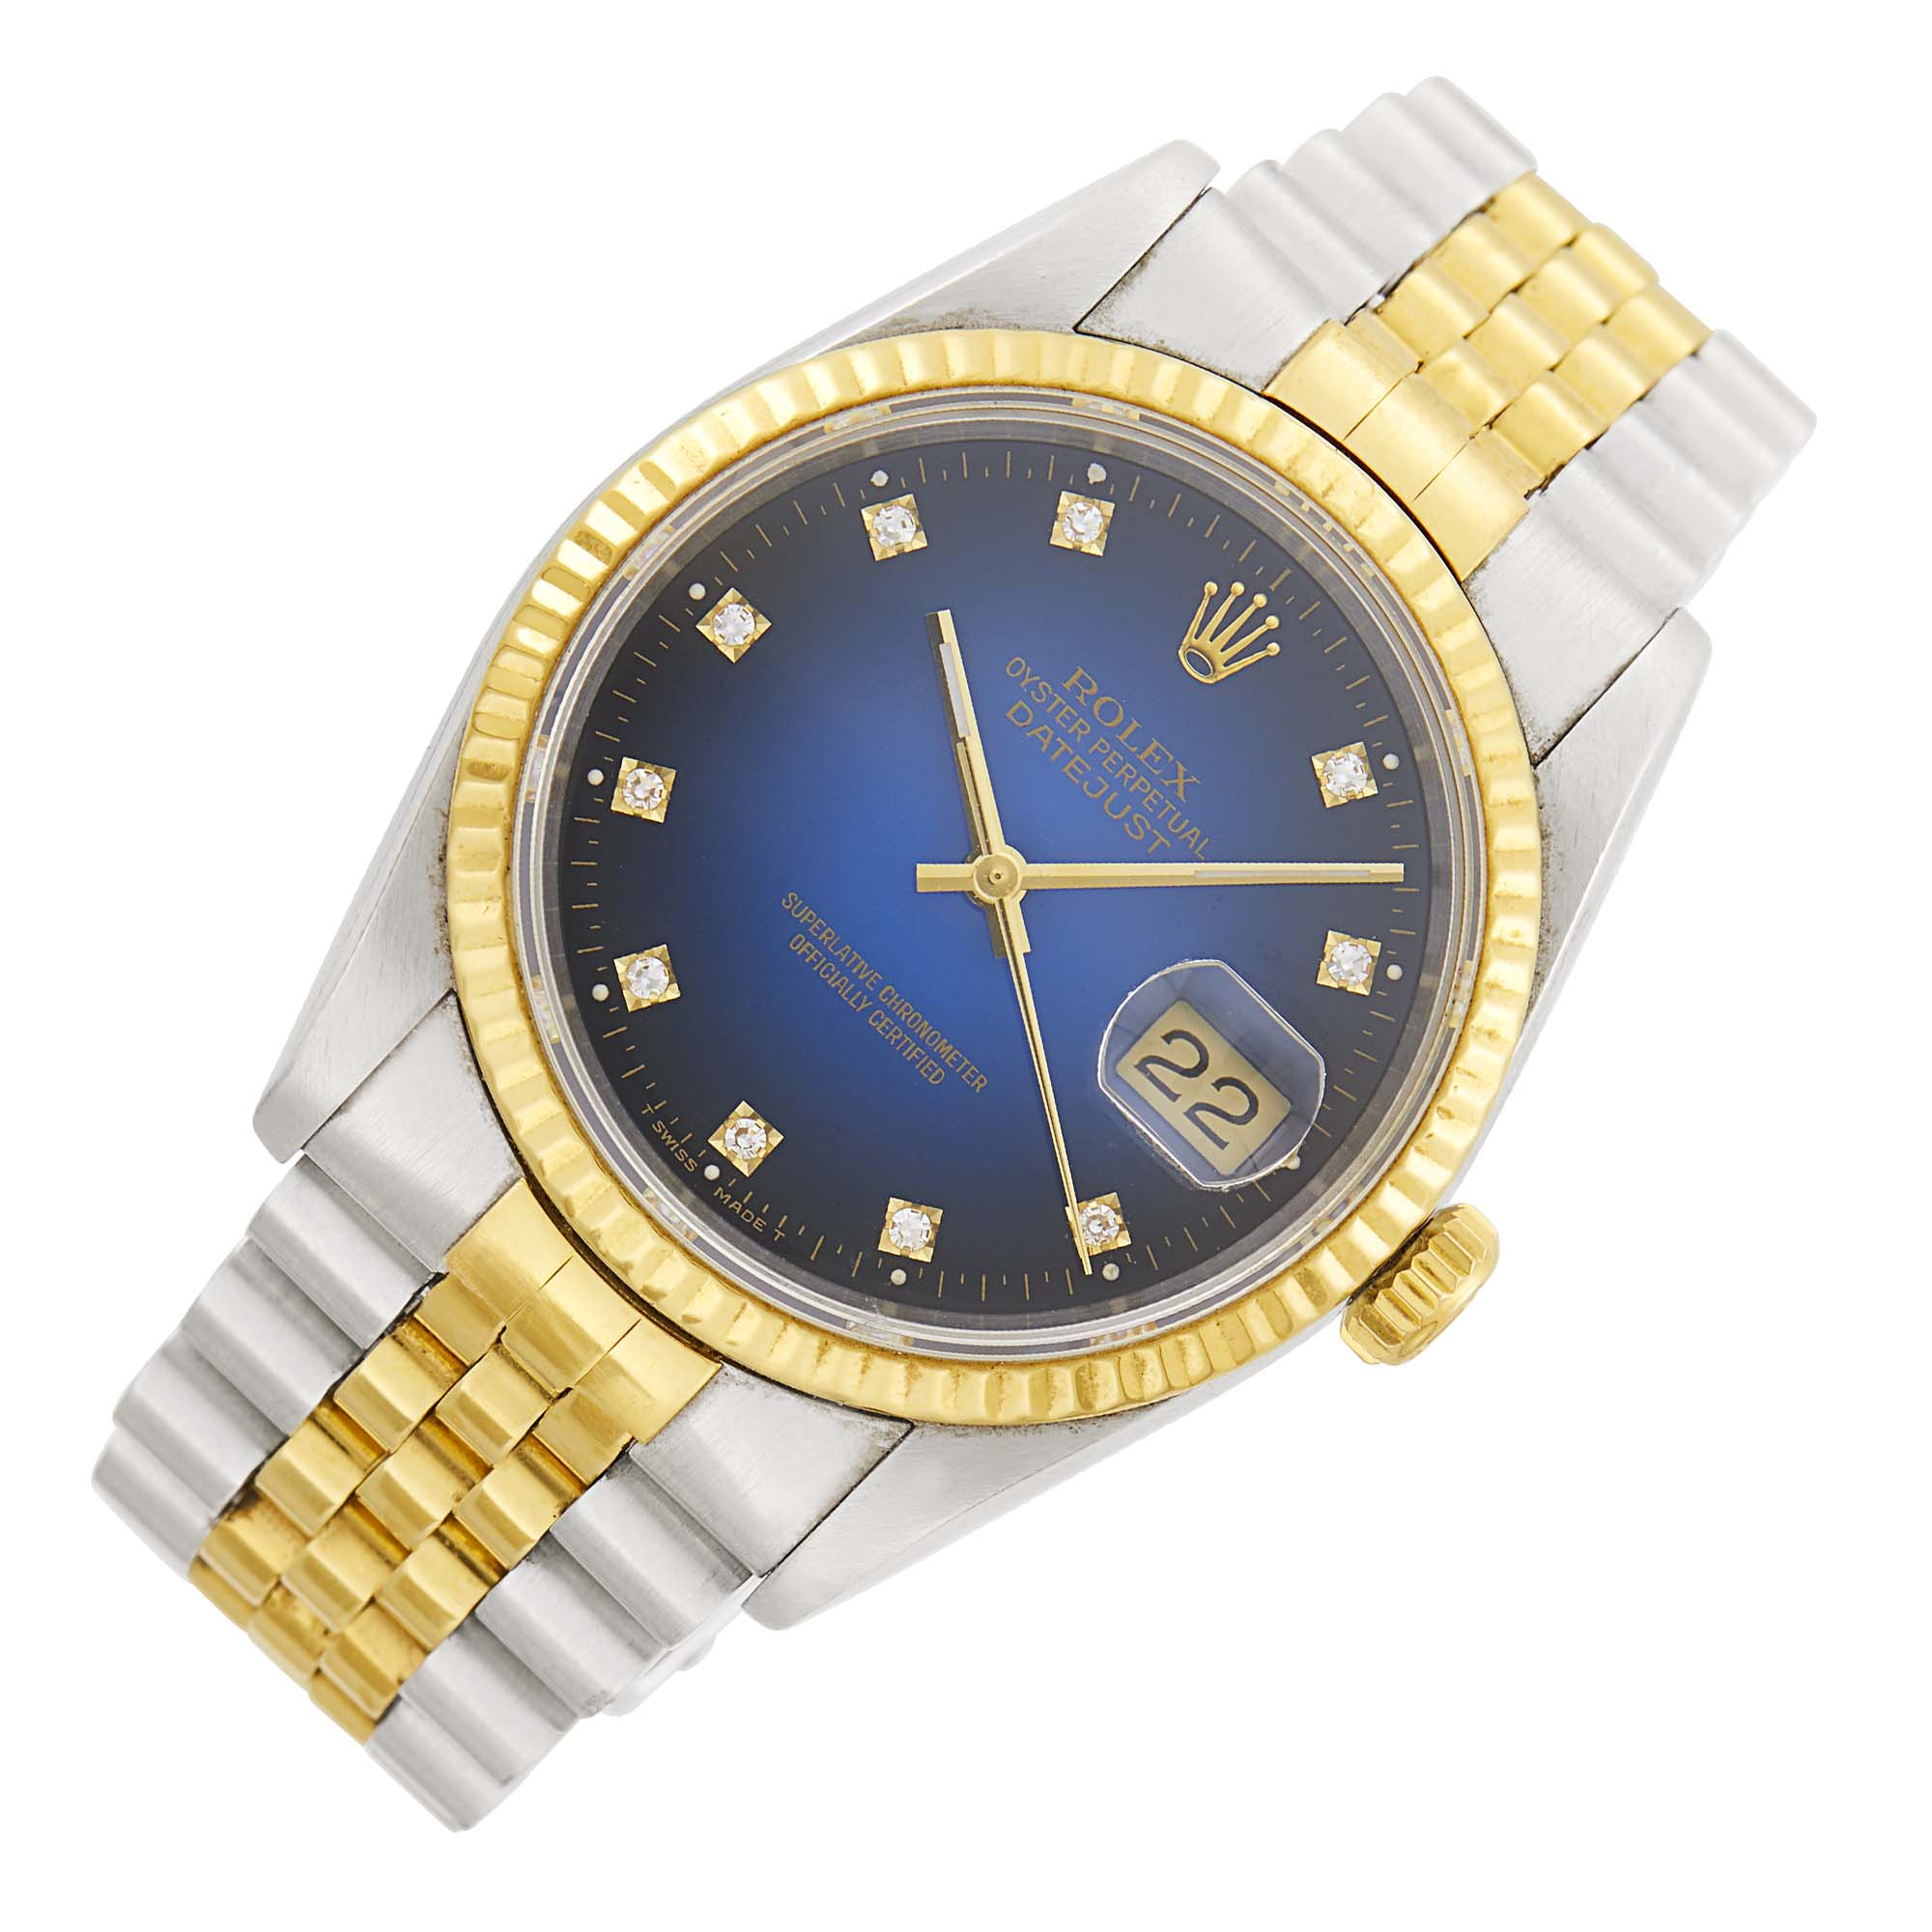 Lot image - Rolex Gentlemans Stainless Steel and Gold Oyster Perpetual DateJust Wristwatch, Ref. 16233